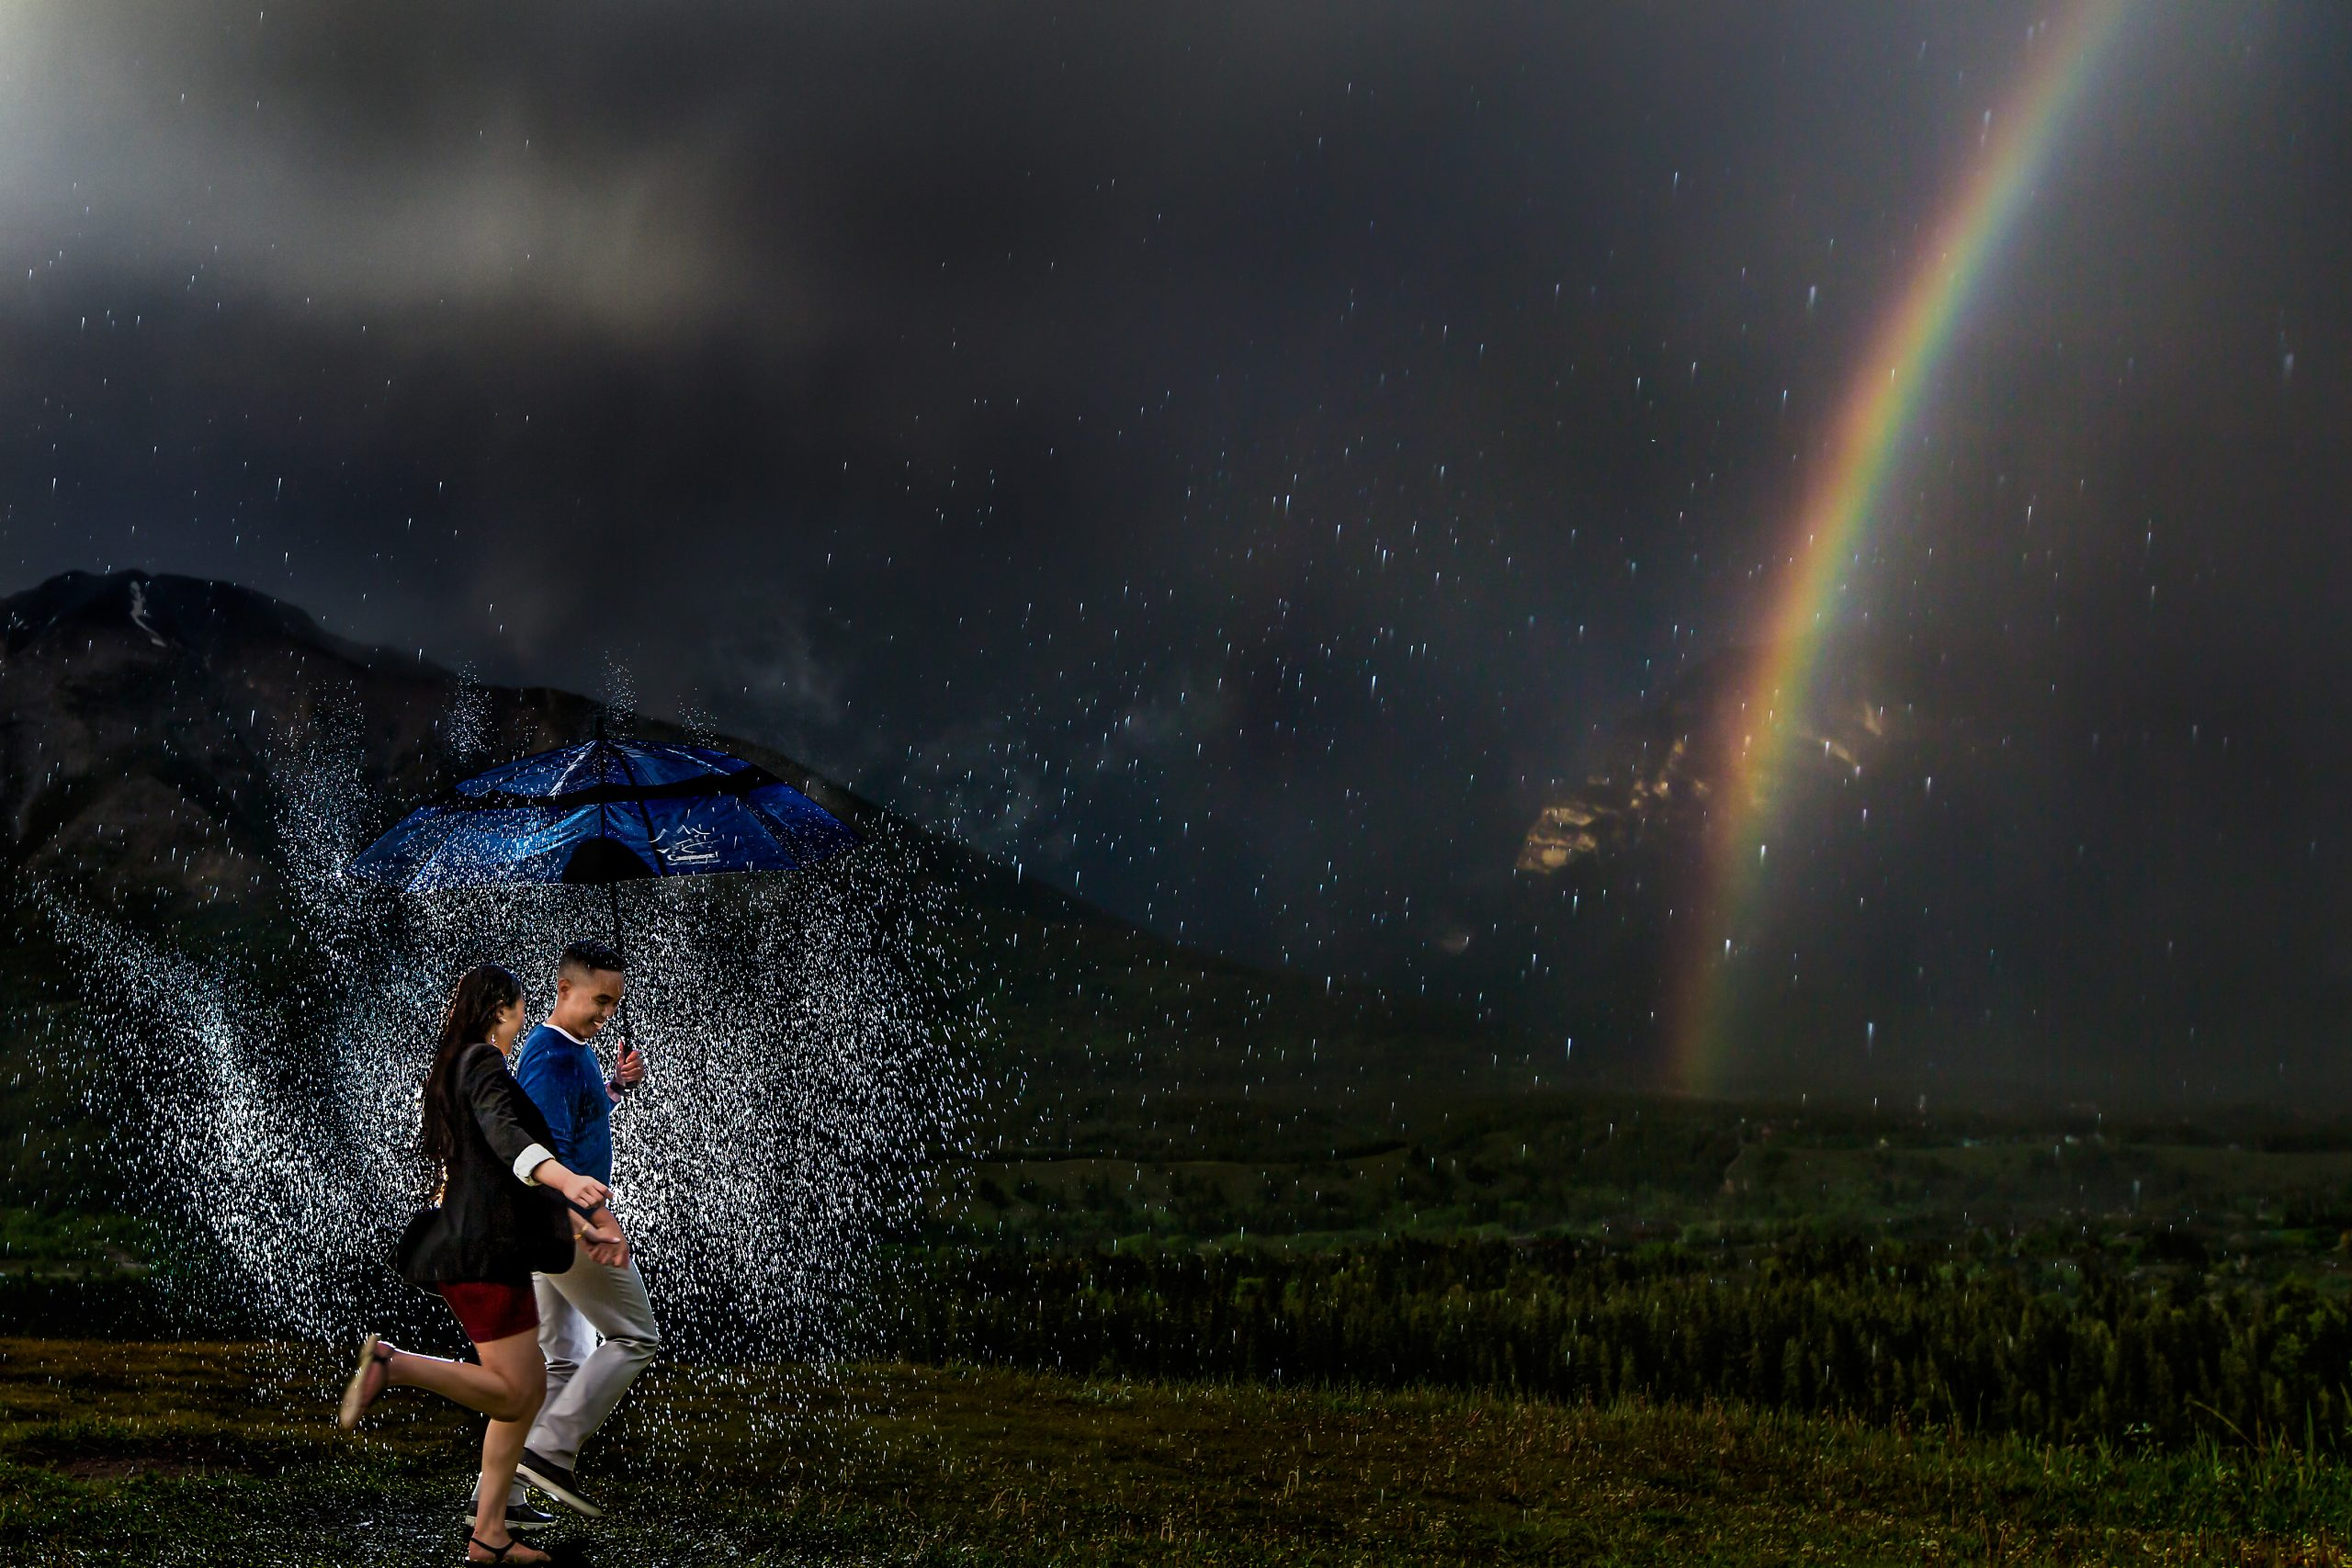 Man and woman run through water holding umbrella to the backdrop of a rainbow